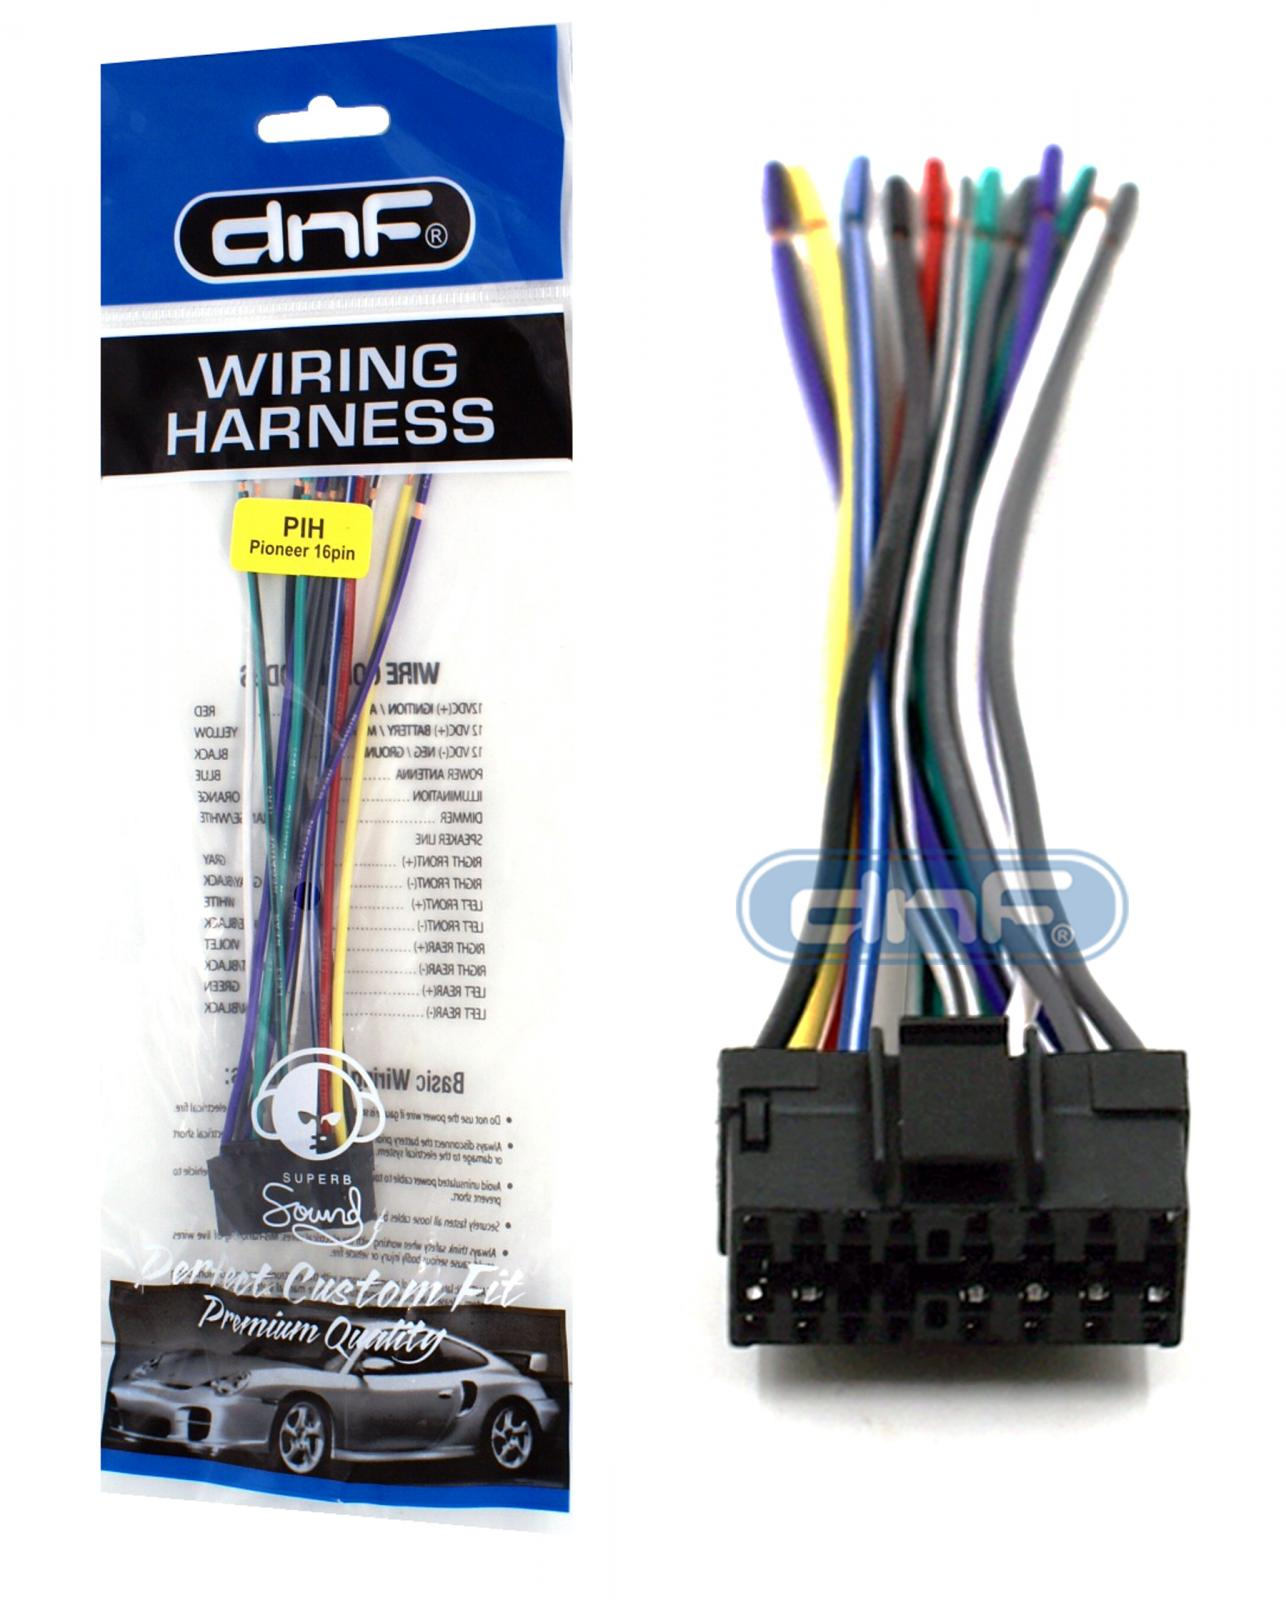 Pioneer Deh 2100 Wiring Harness 31 Diagram Images Mpwiringdiagram 1300mp Versionidty5cj2n7ltrg2fn7p2f1dzw0 774hcq 1100 1150